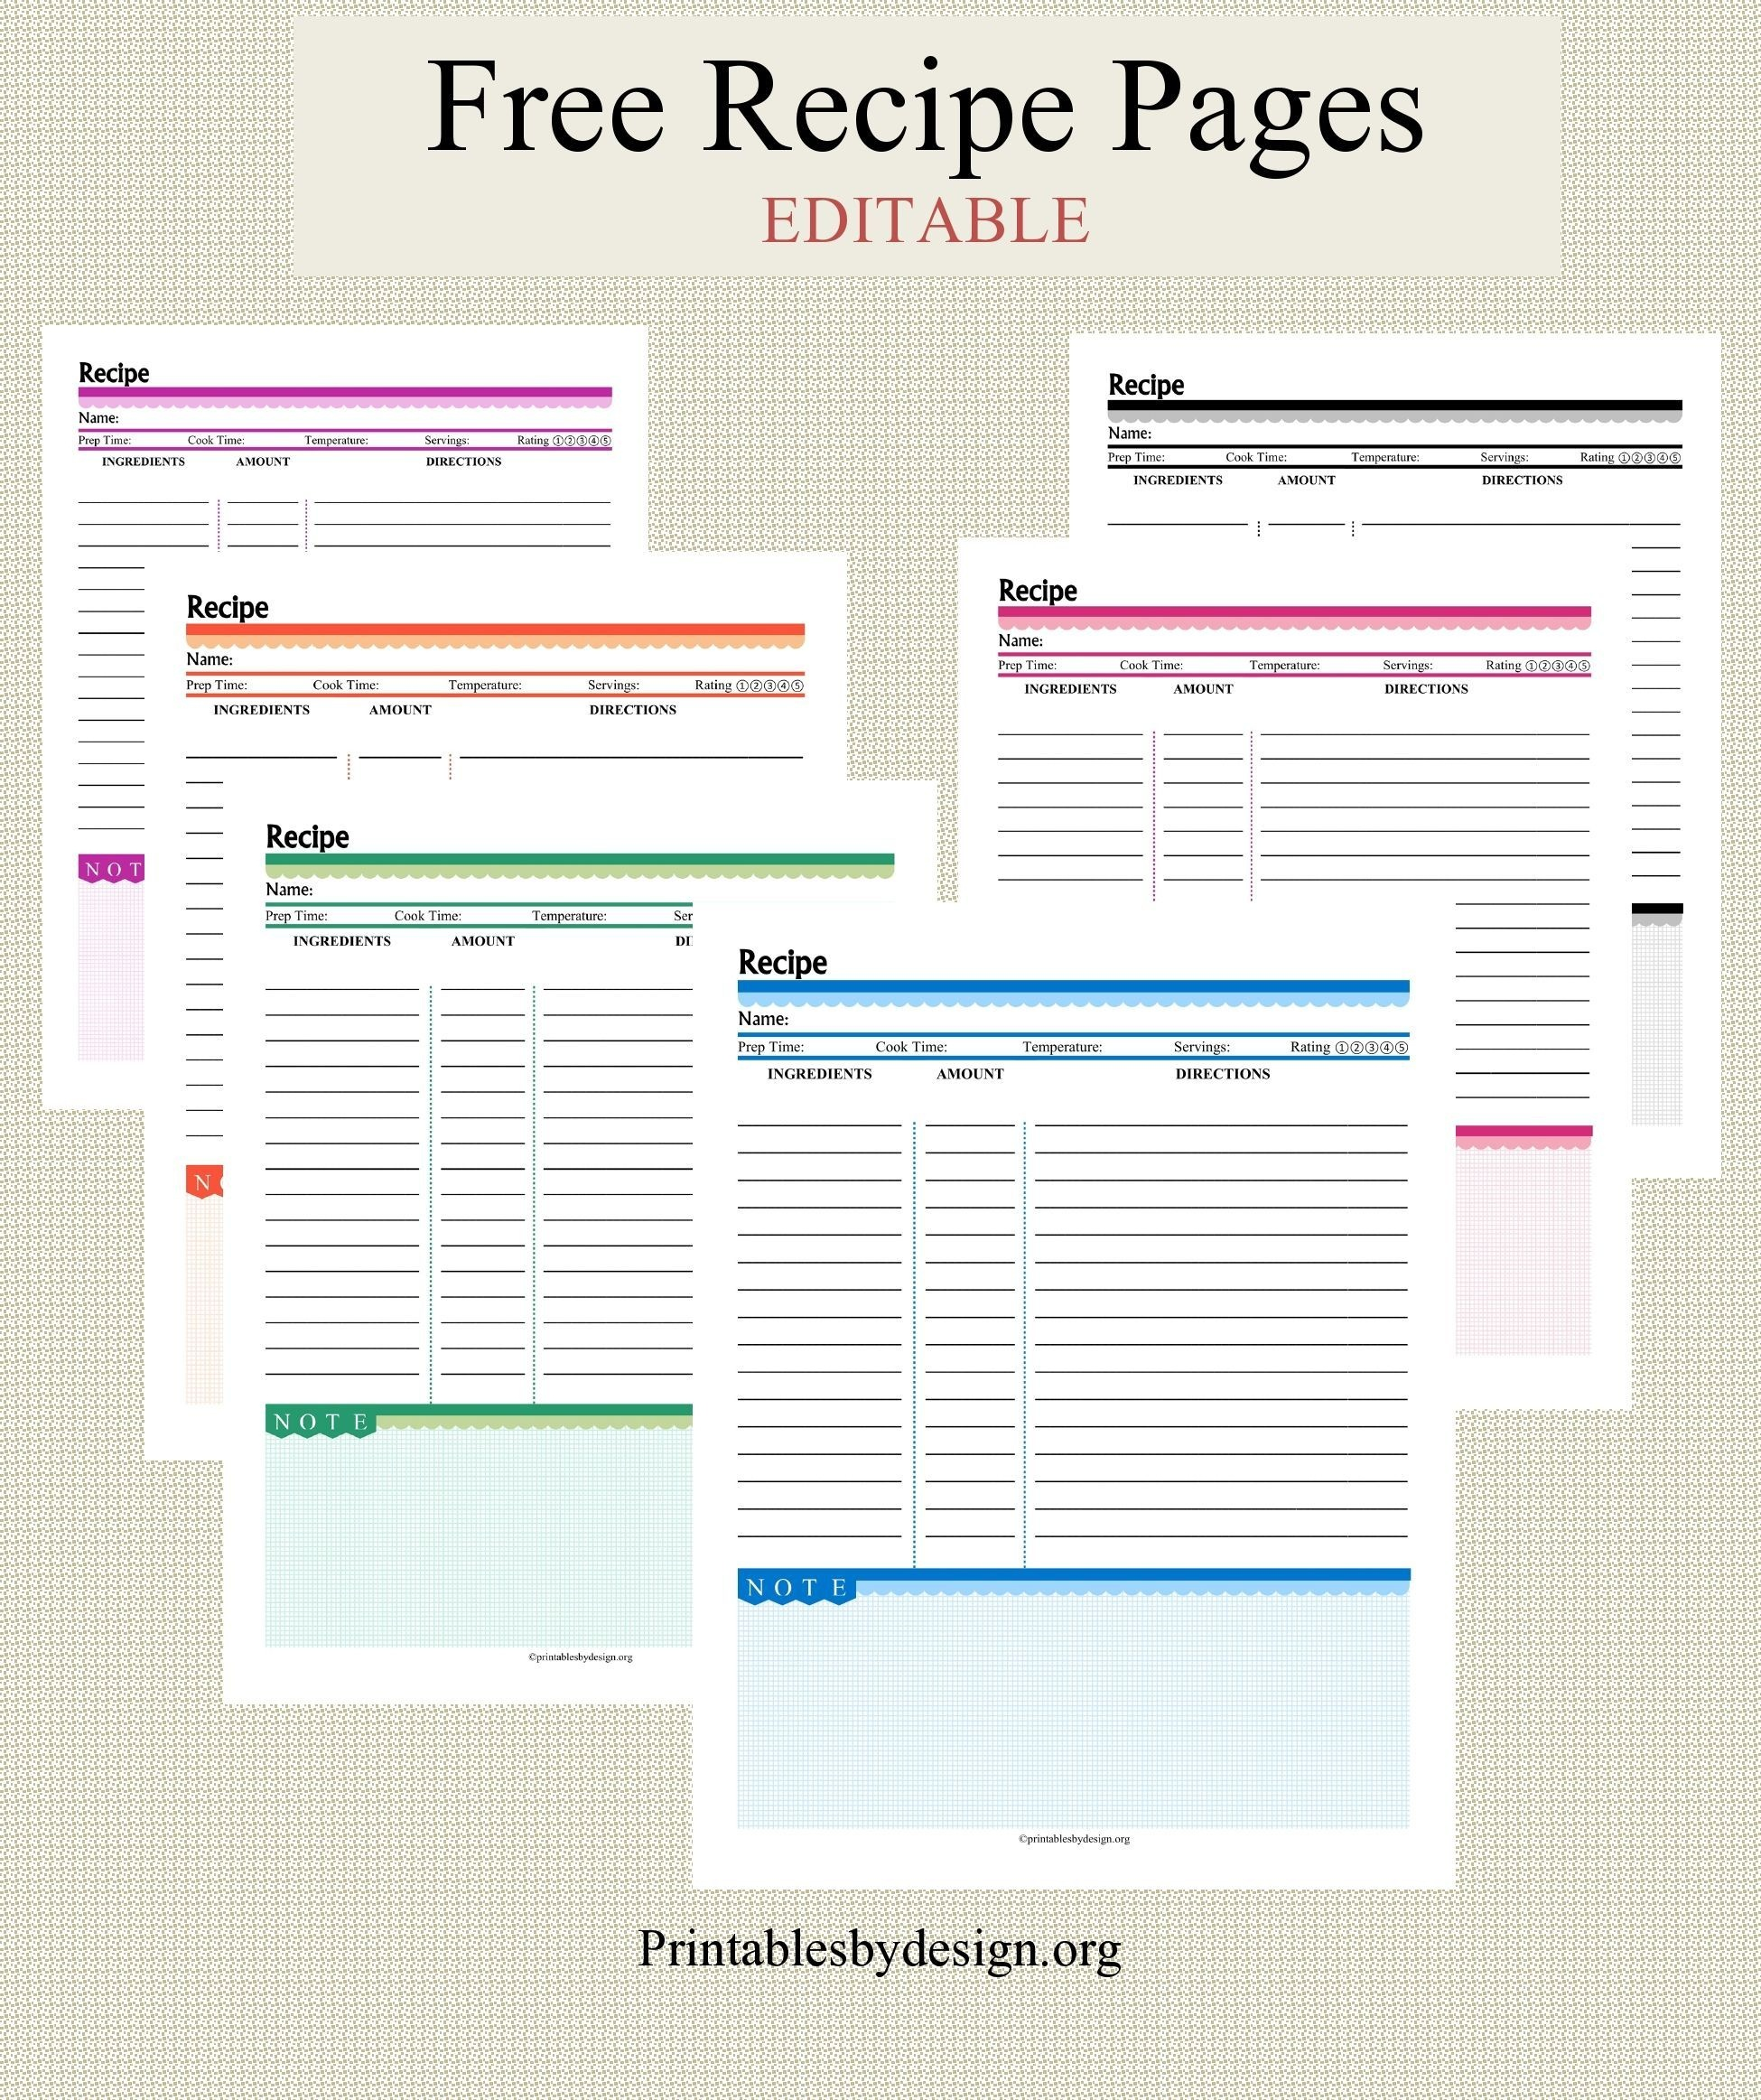 012 Free Recipe Book Template ~ Ulyssesroom | Fine. Food | Recipe - Free Printable Recipe Book Pages